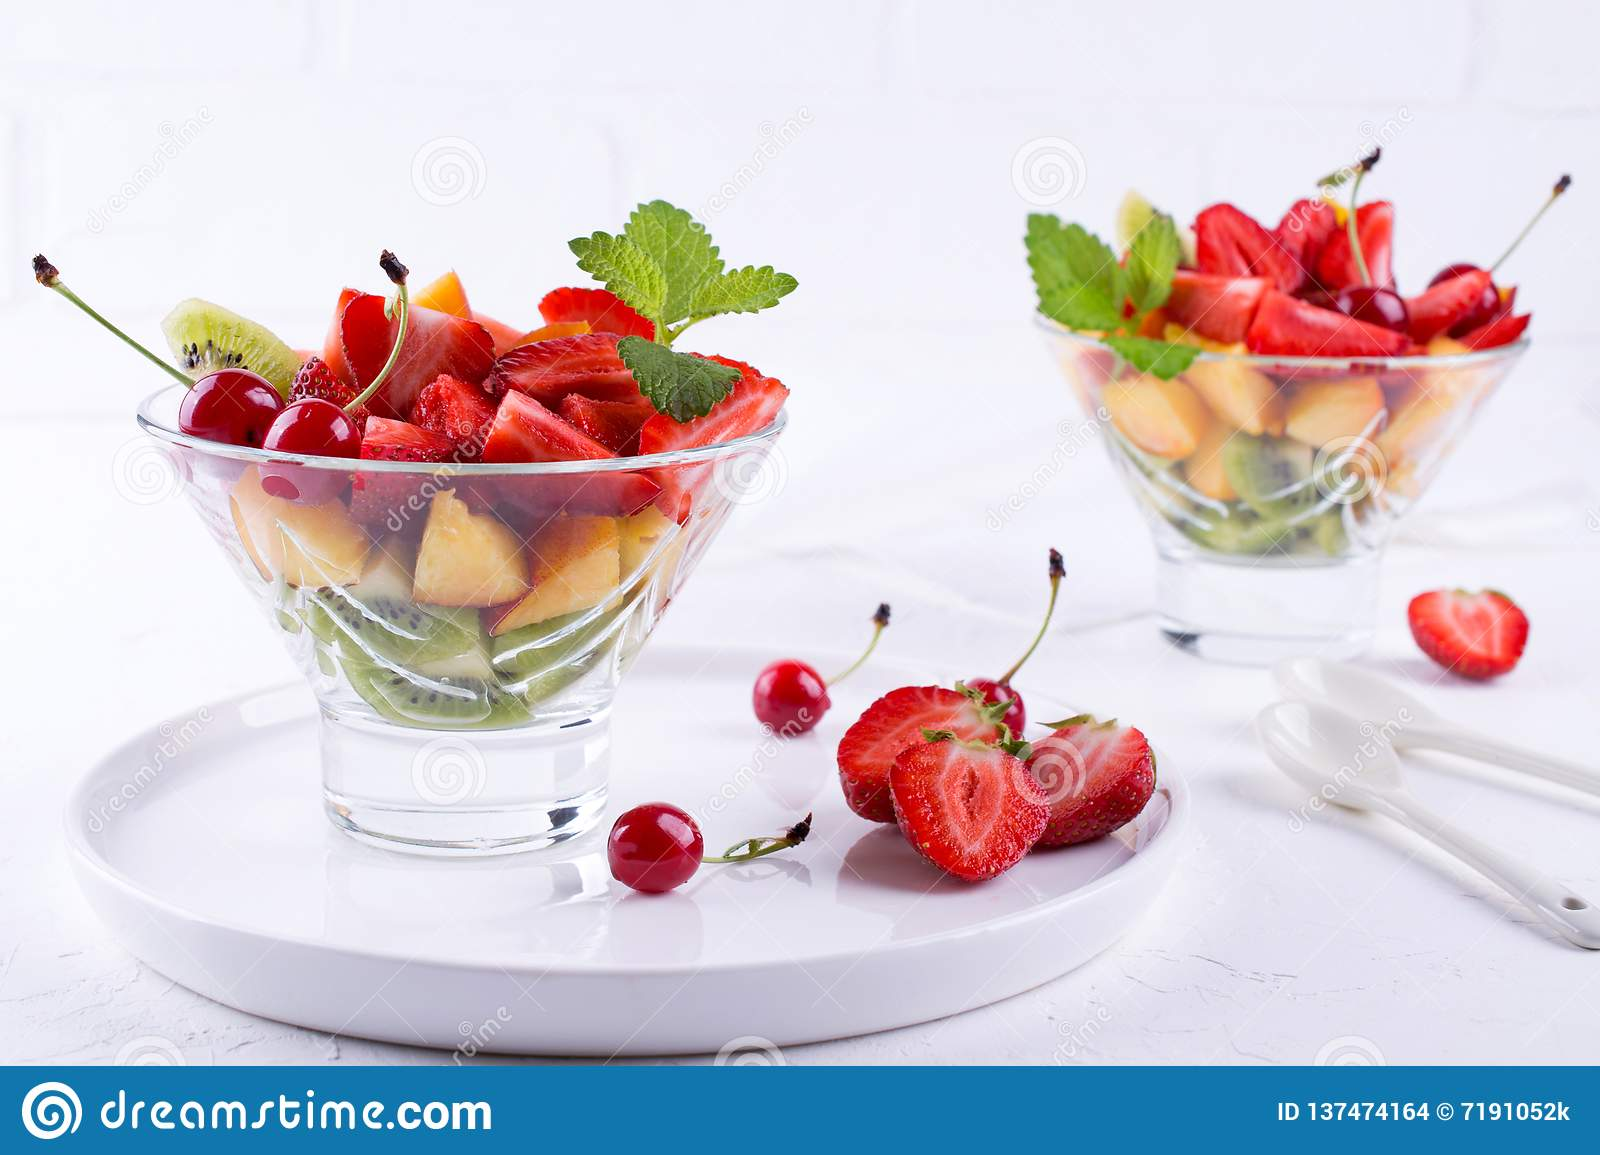 Colorful fruit salad in the glass bowl. Strawberries, kiwis and apricots dessert